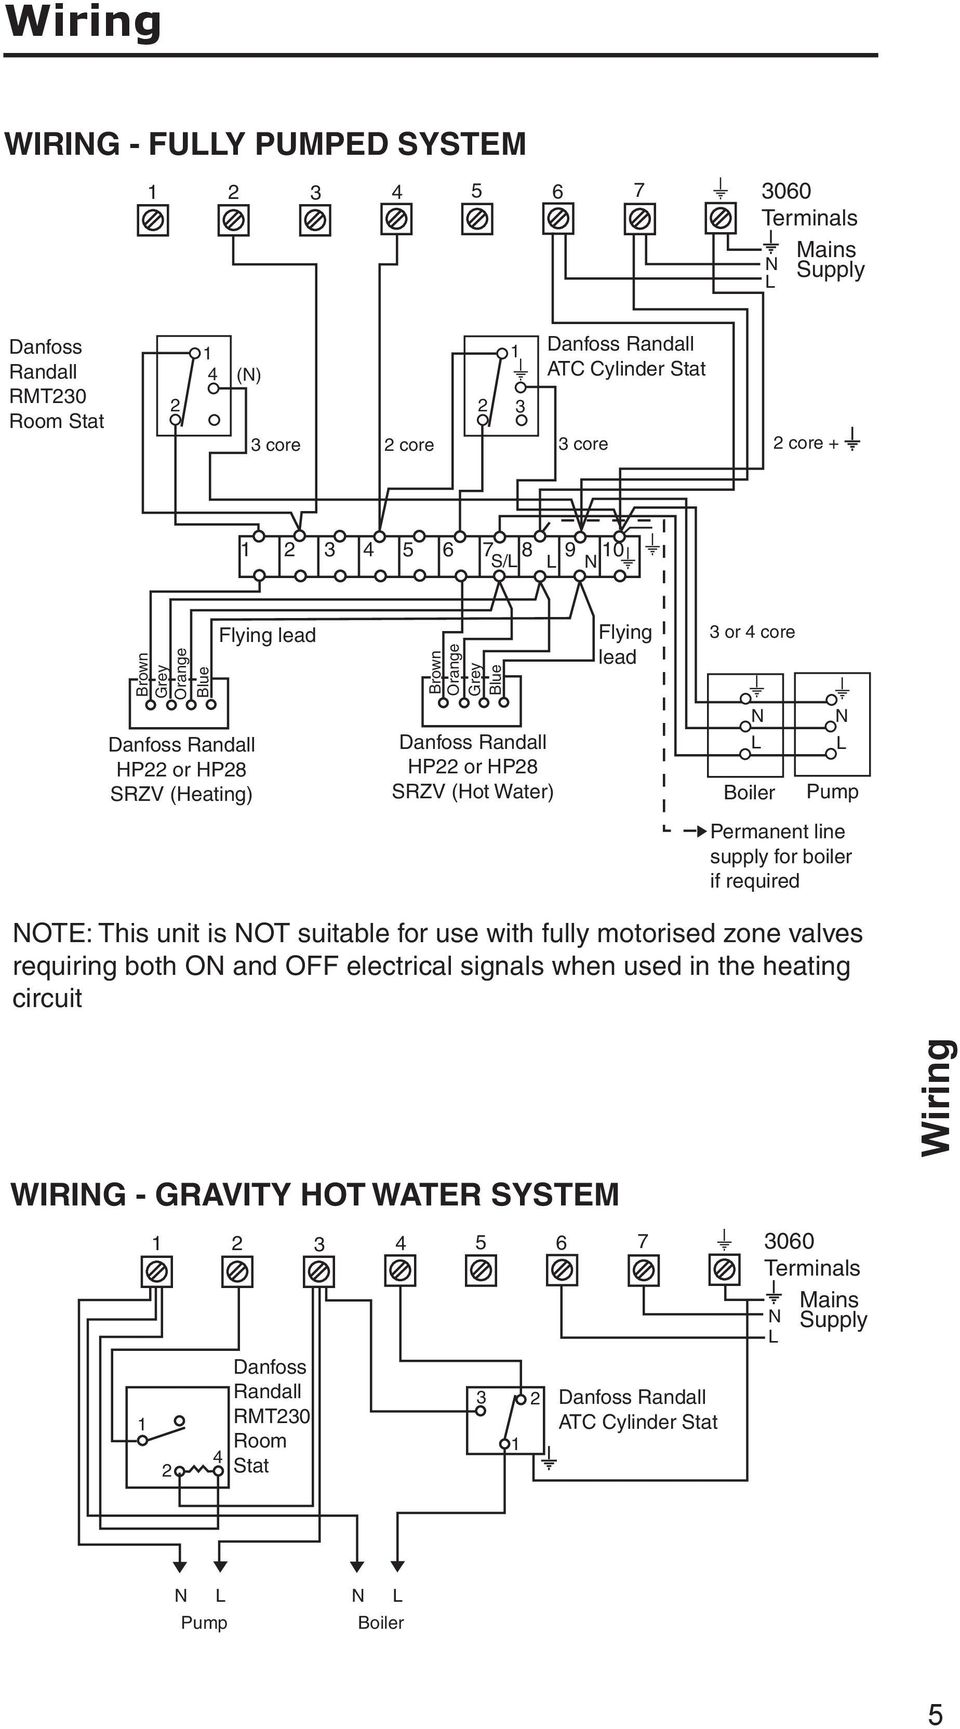 hight resolution of l boiler n l pump permanent line supply for boiler if required note this unit is